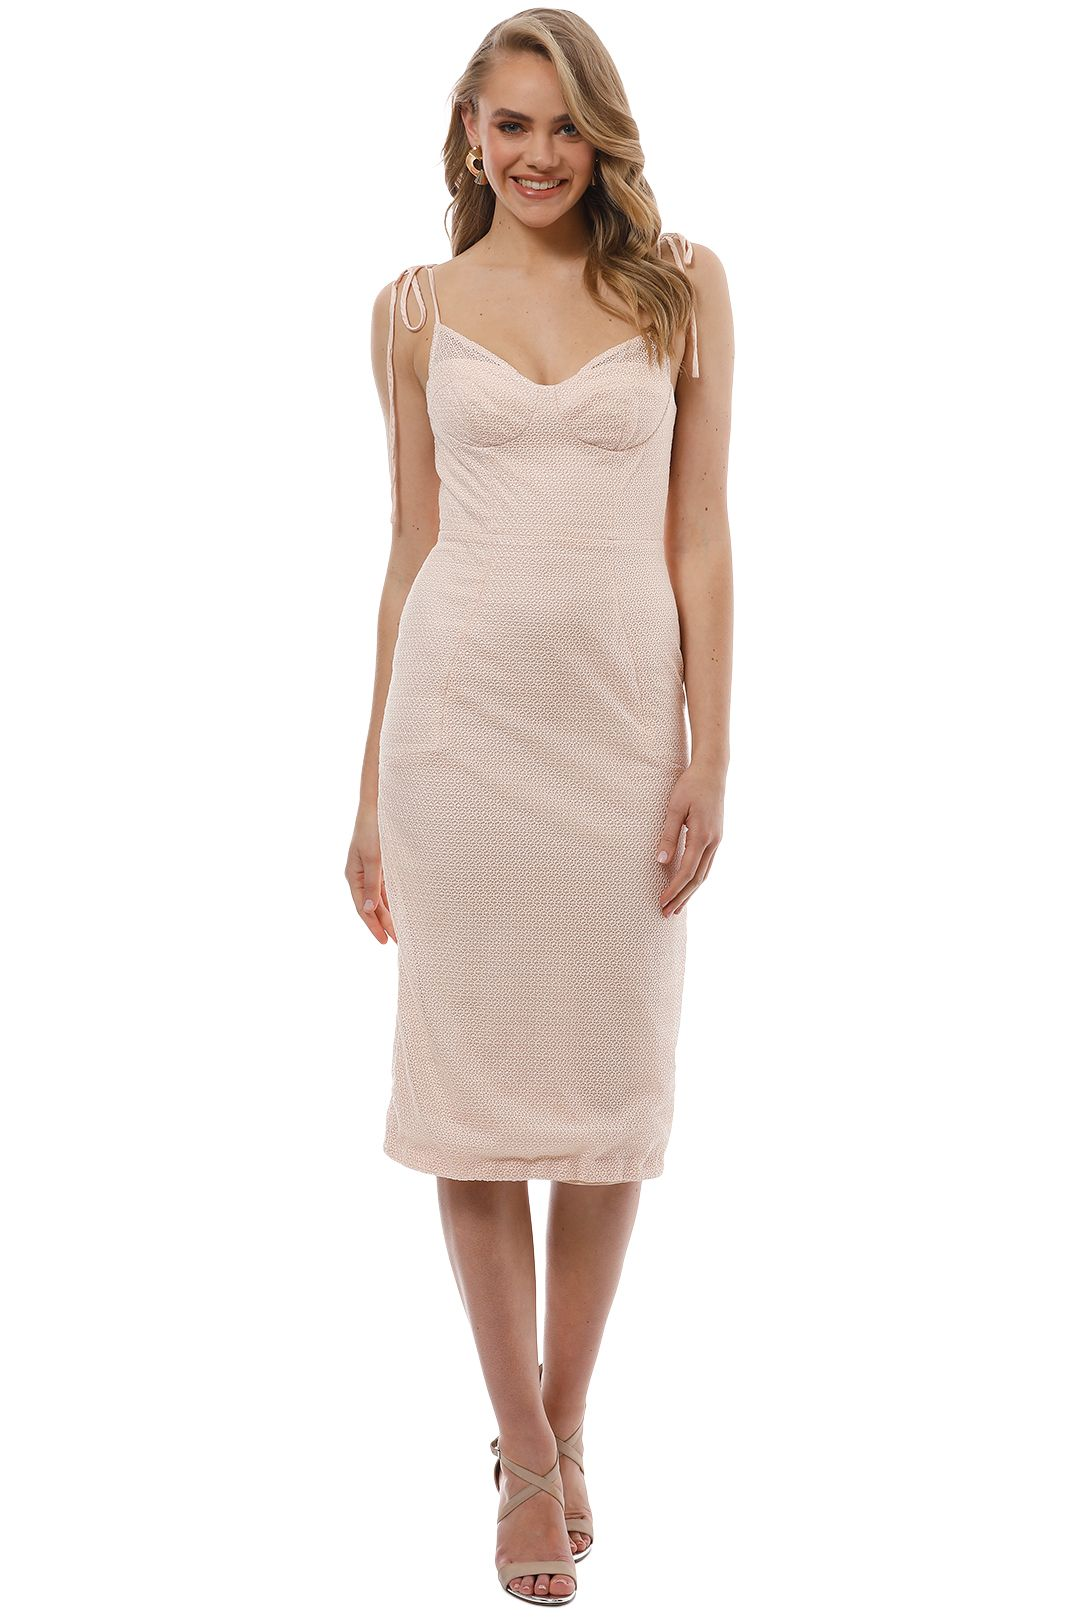 Rebecca Vallance - Avignon Dress - Nude - Front